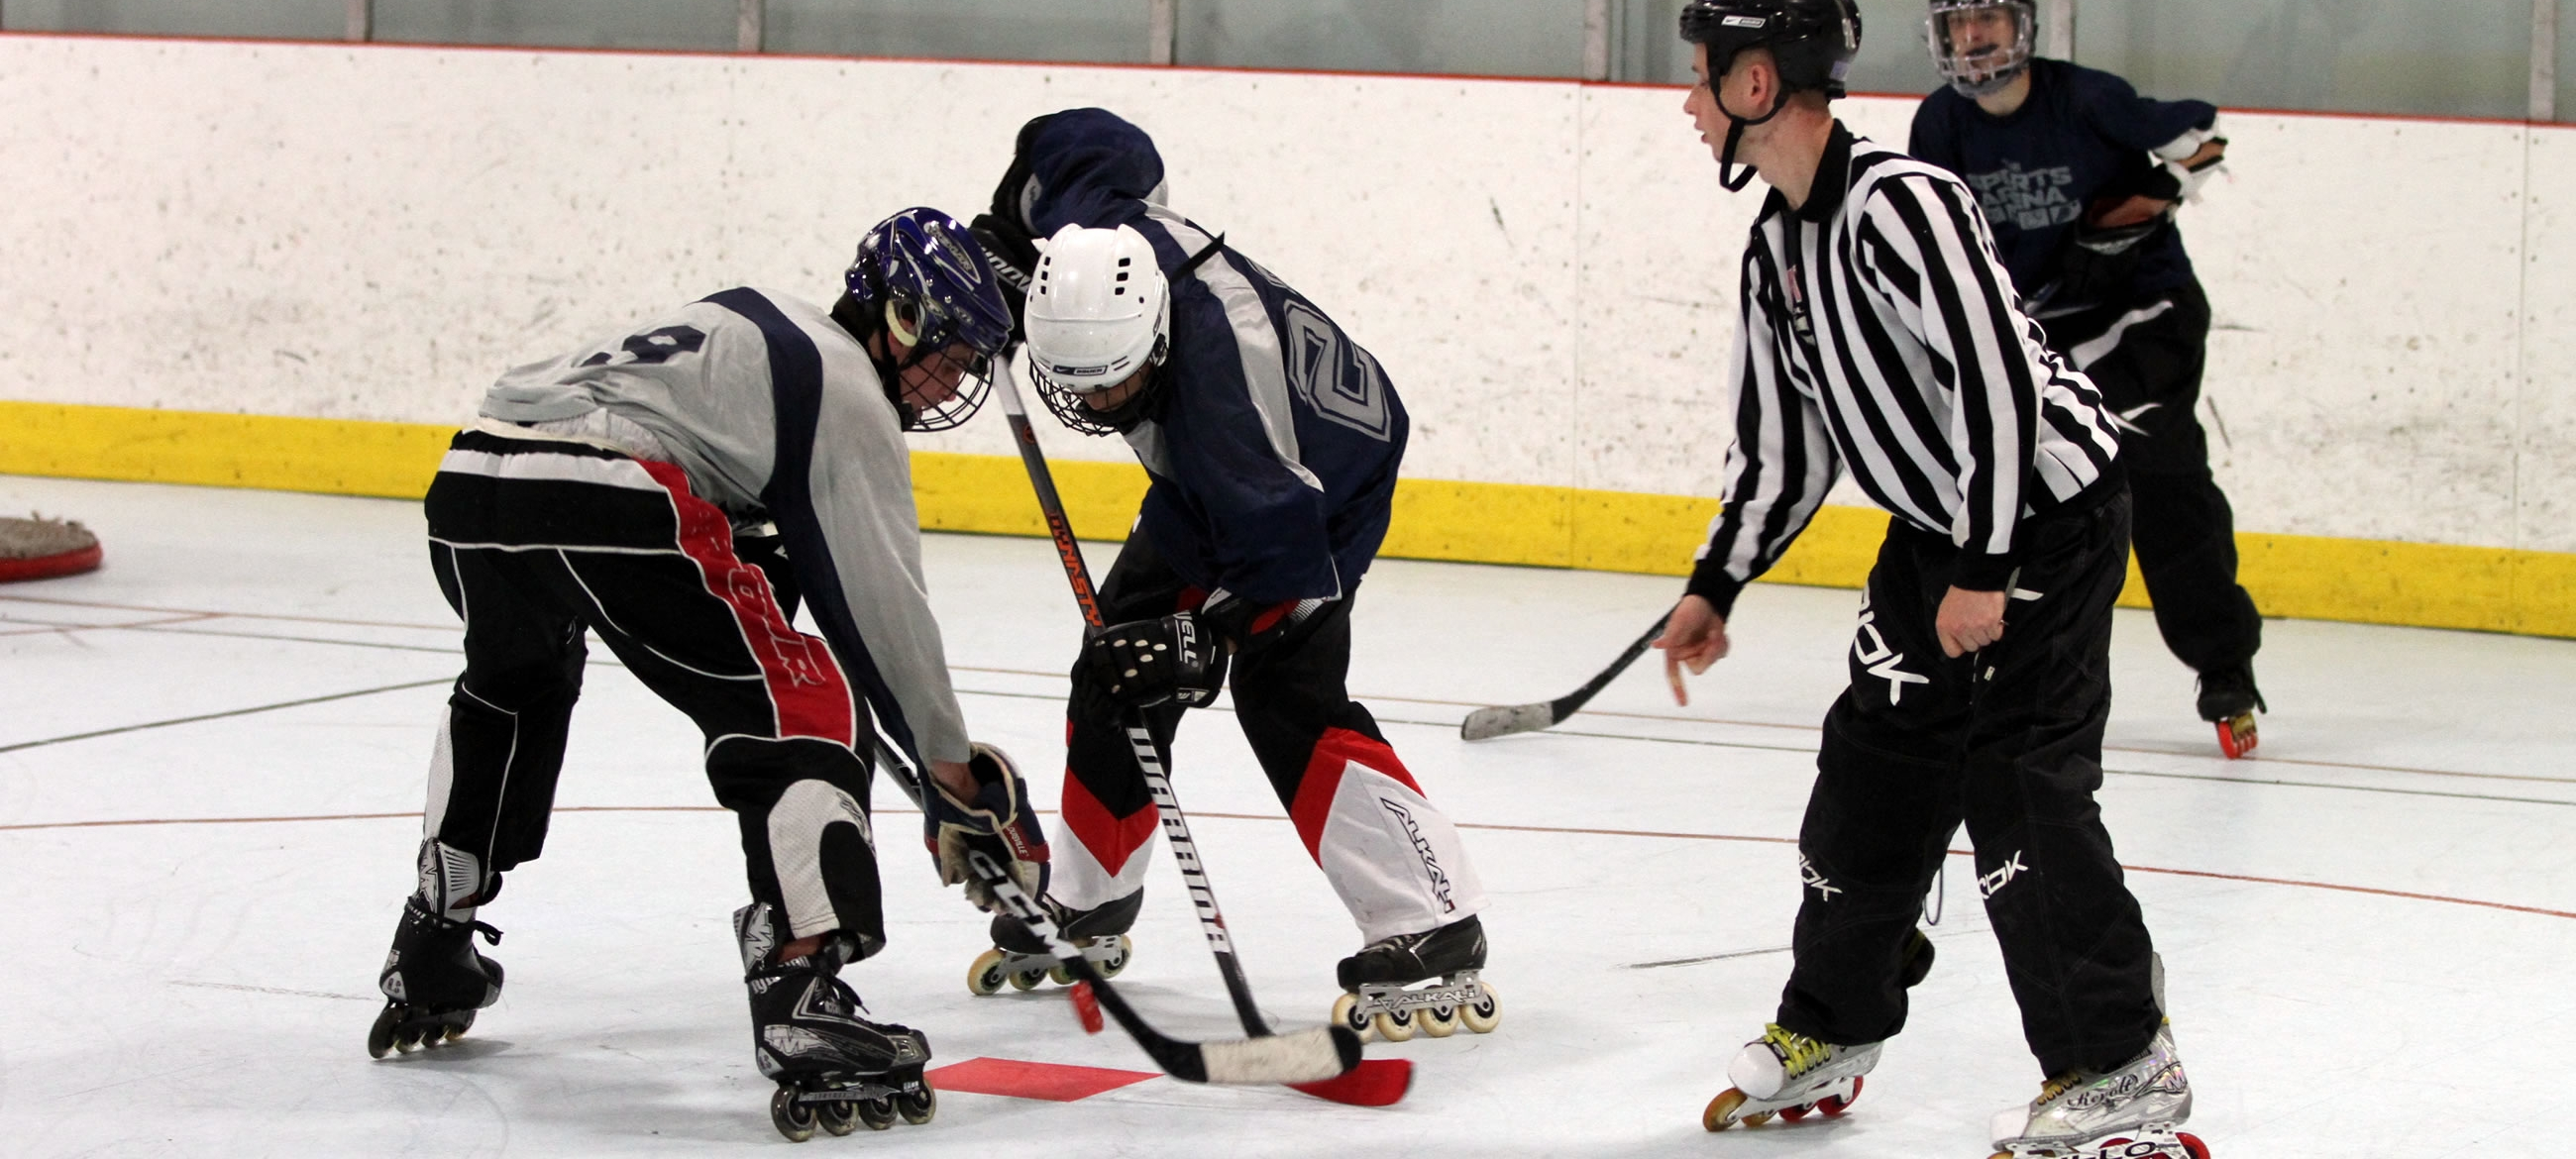 Long Island 18 & Over Open Roller Hockey